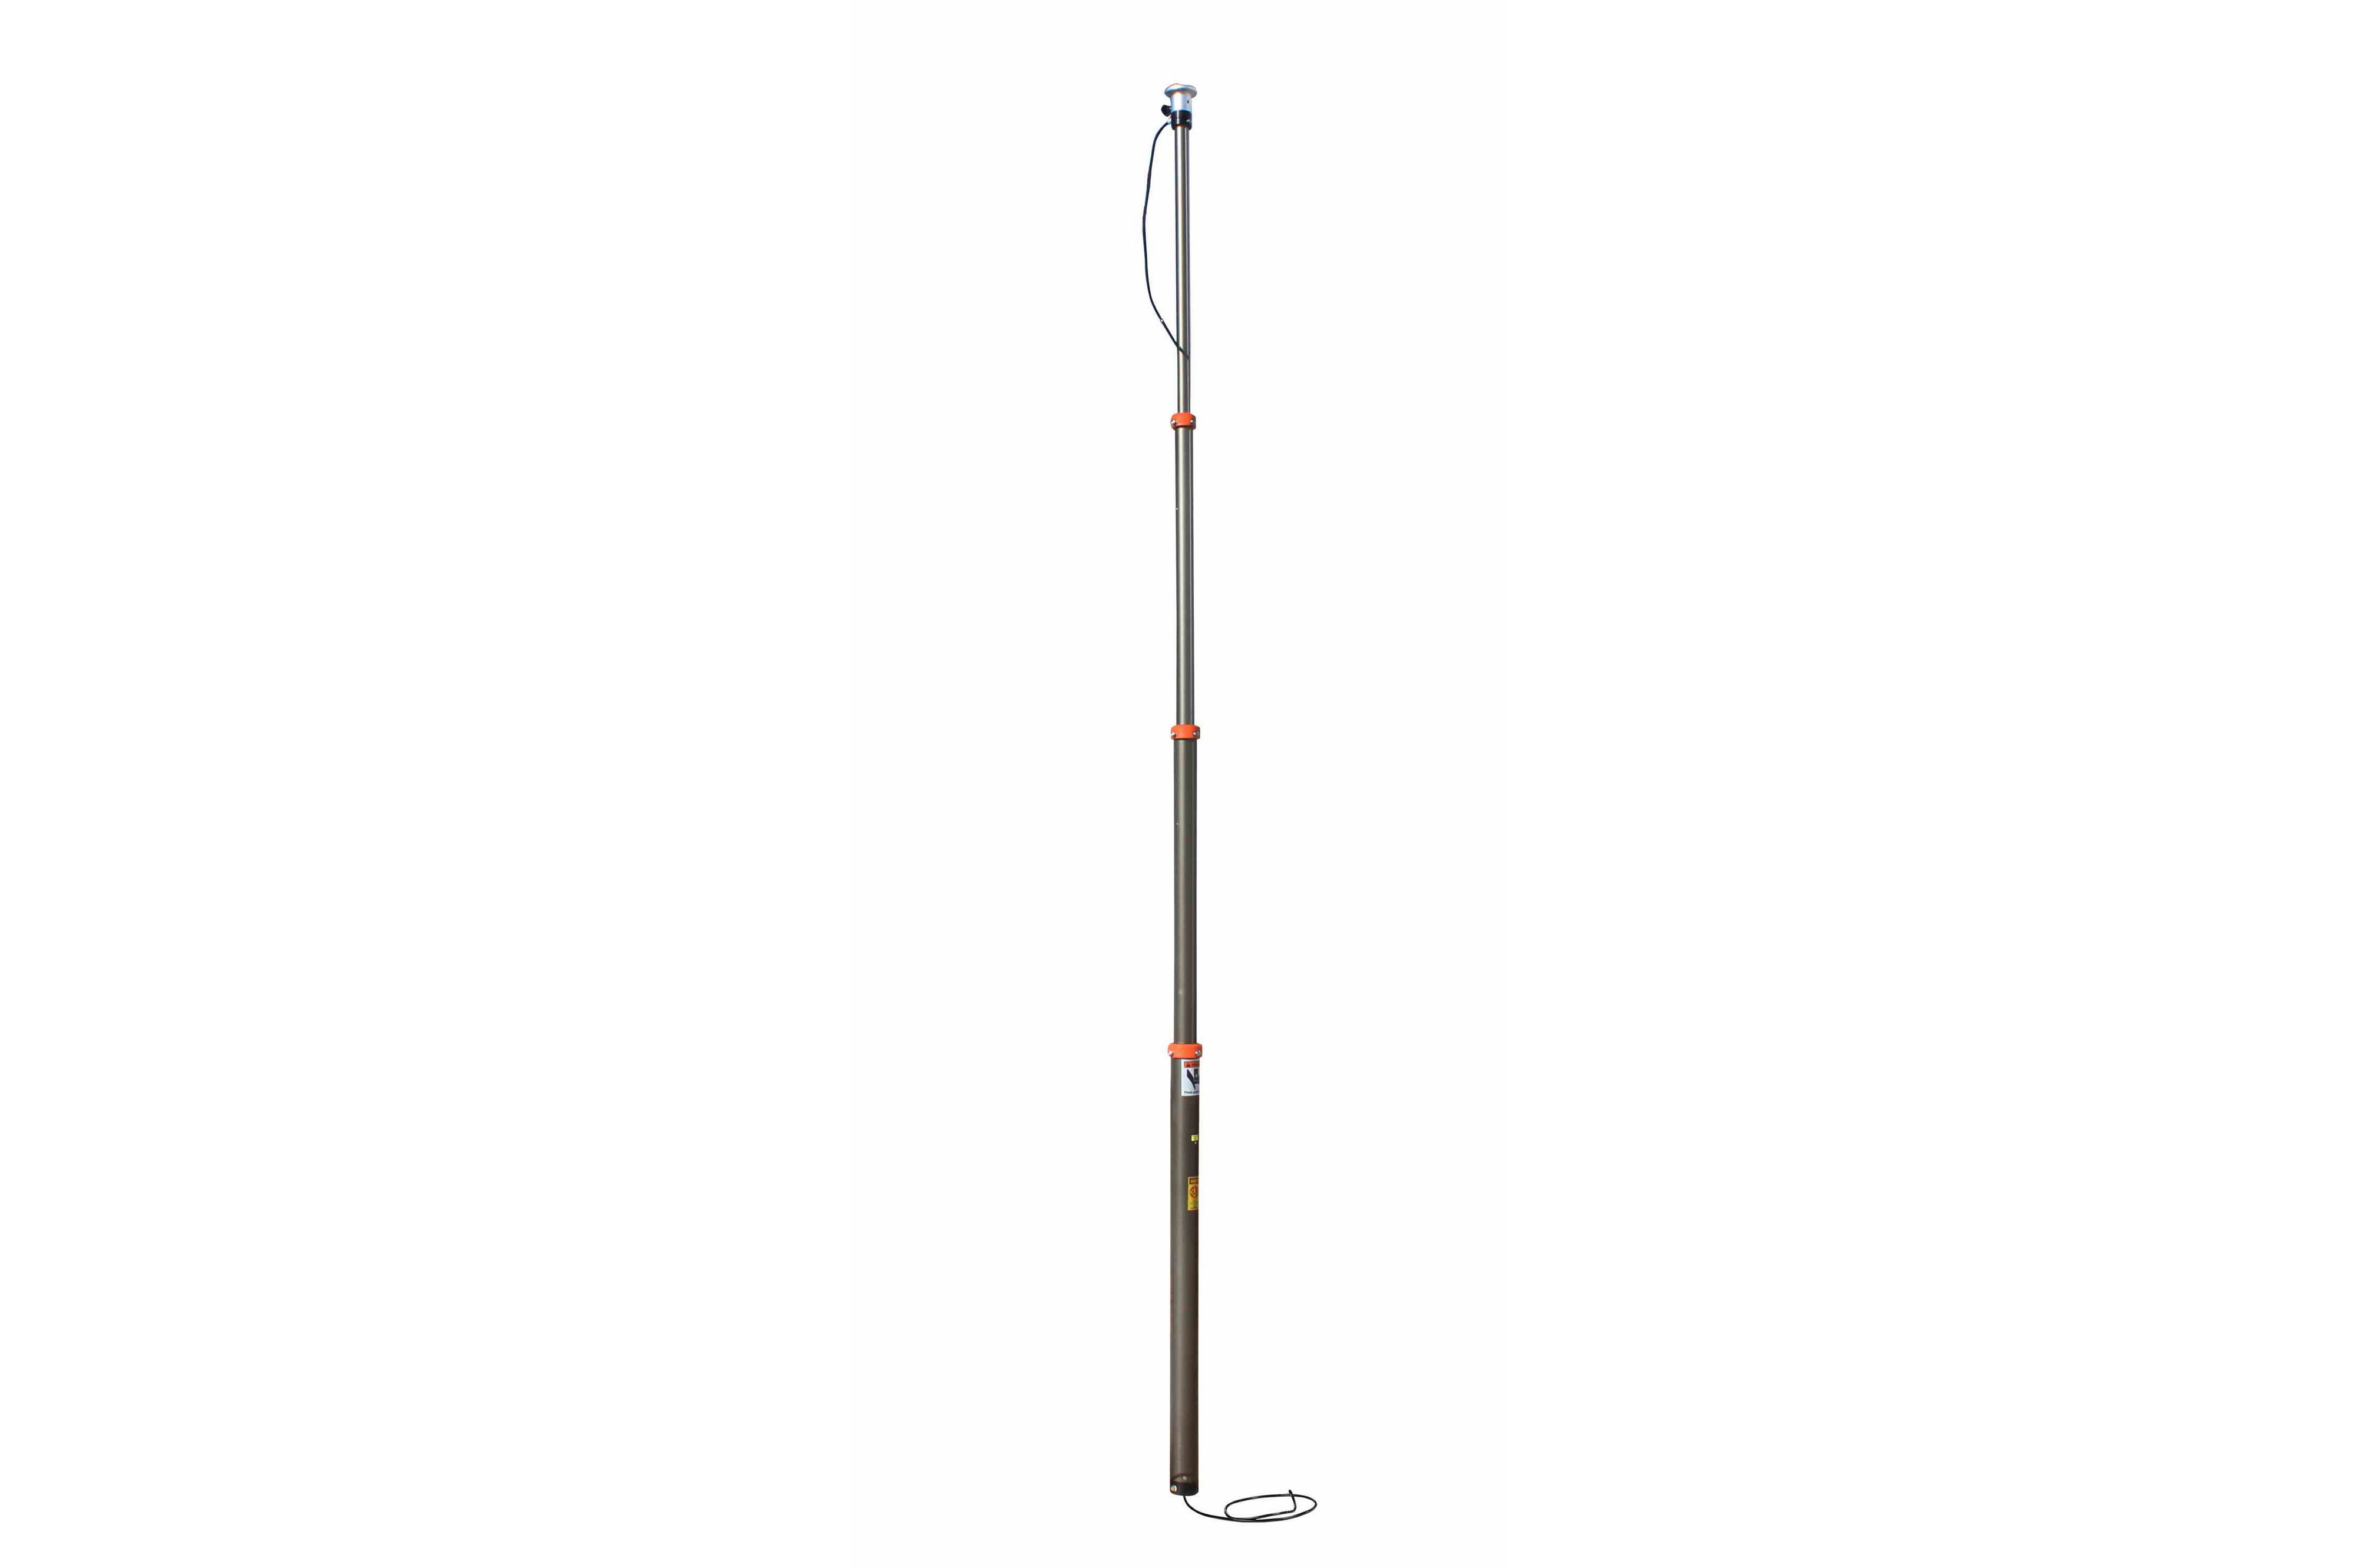 Larson Electronics Releases A Thirteen And A Half Foot Pneumatic Telescoping Light Mast